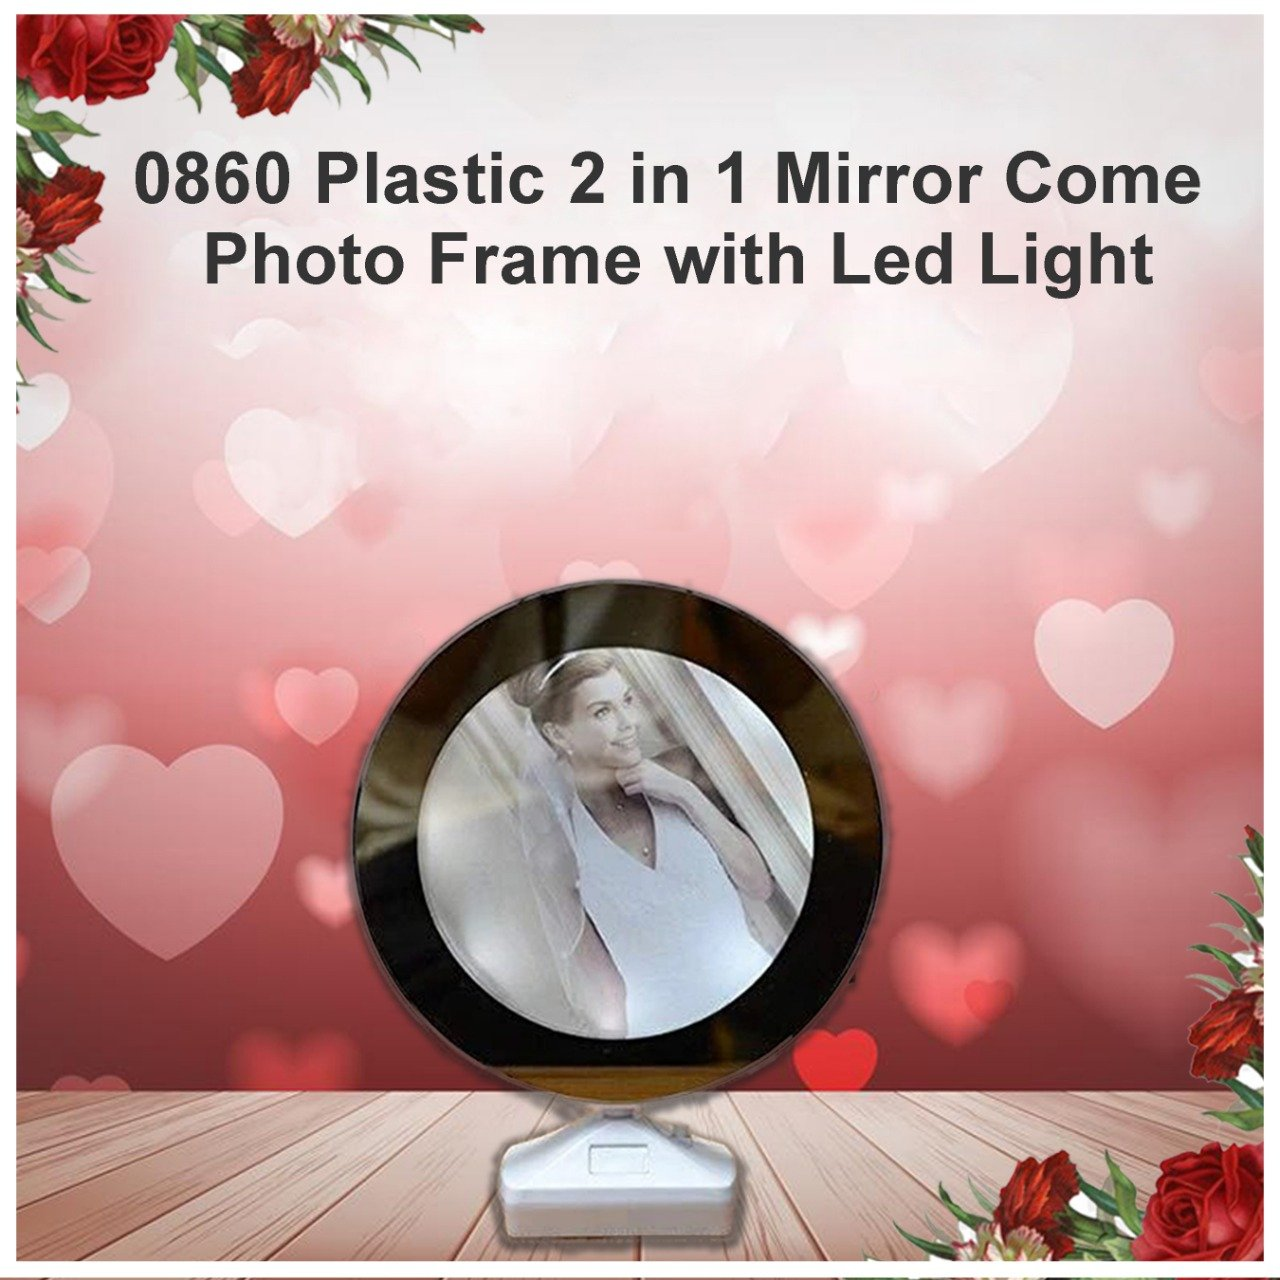 Plastic 2 in 1 Mirror Come Photo Frame with Led Light